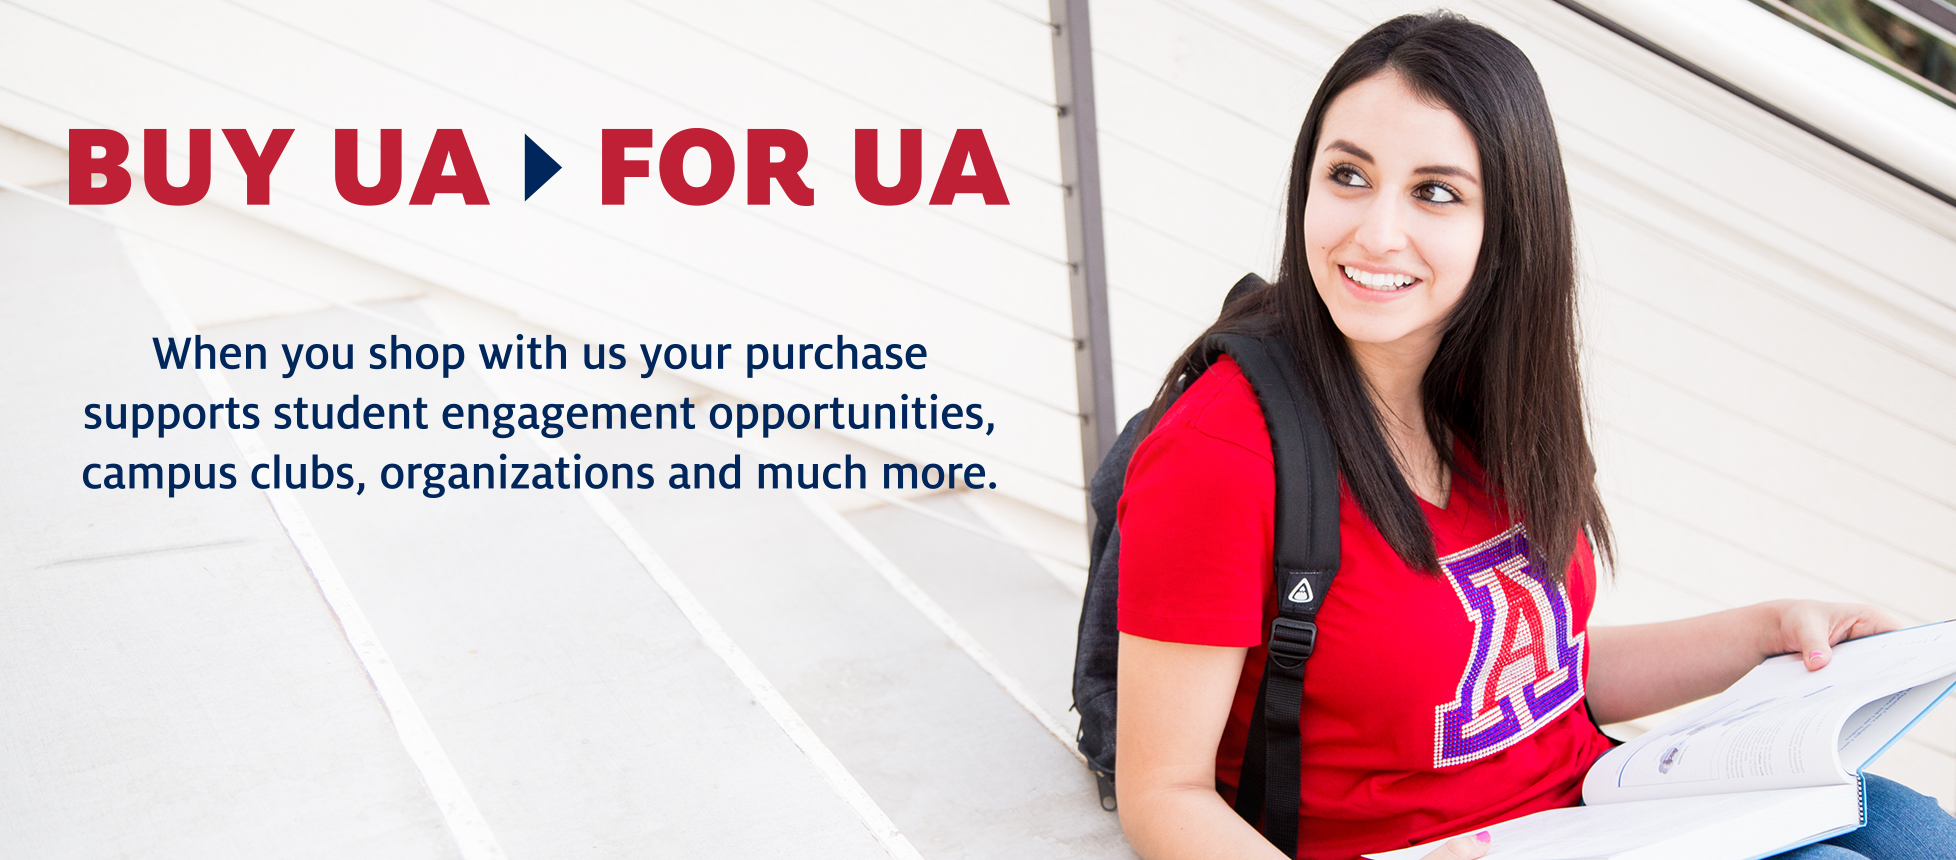 BUY UA ? FOR UA